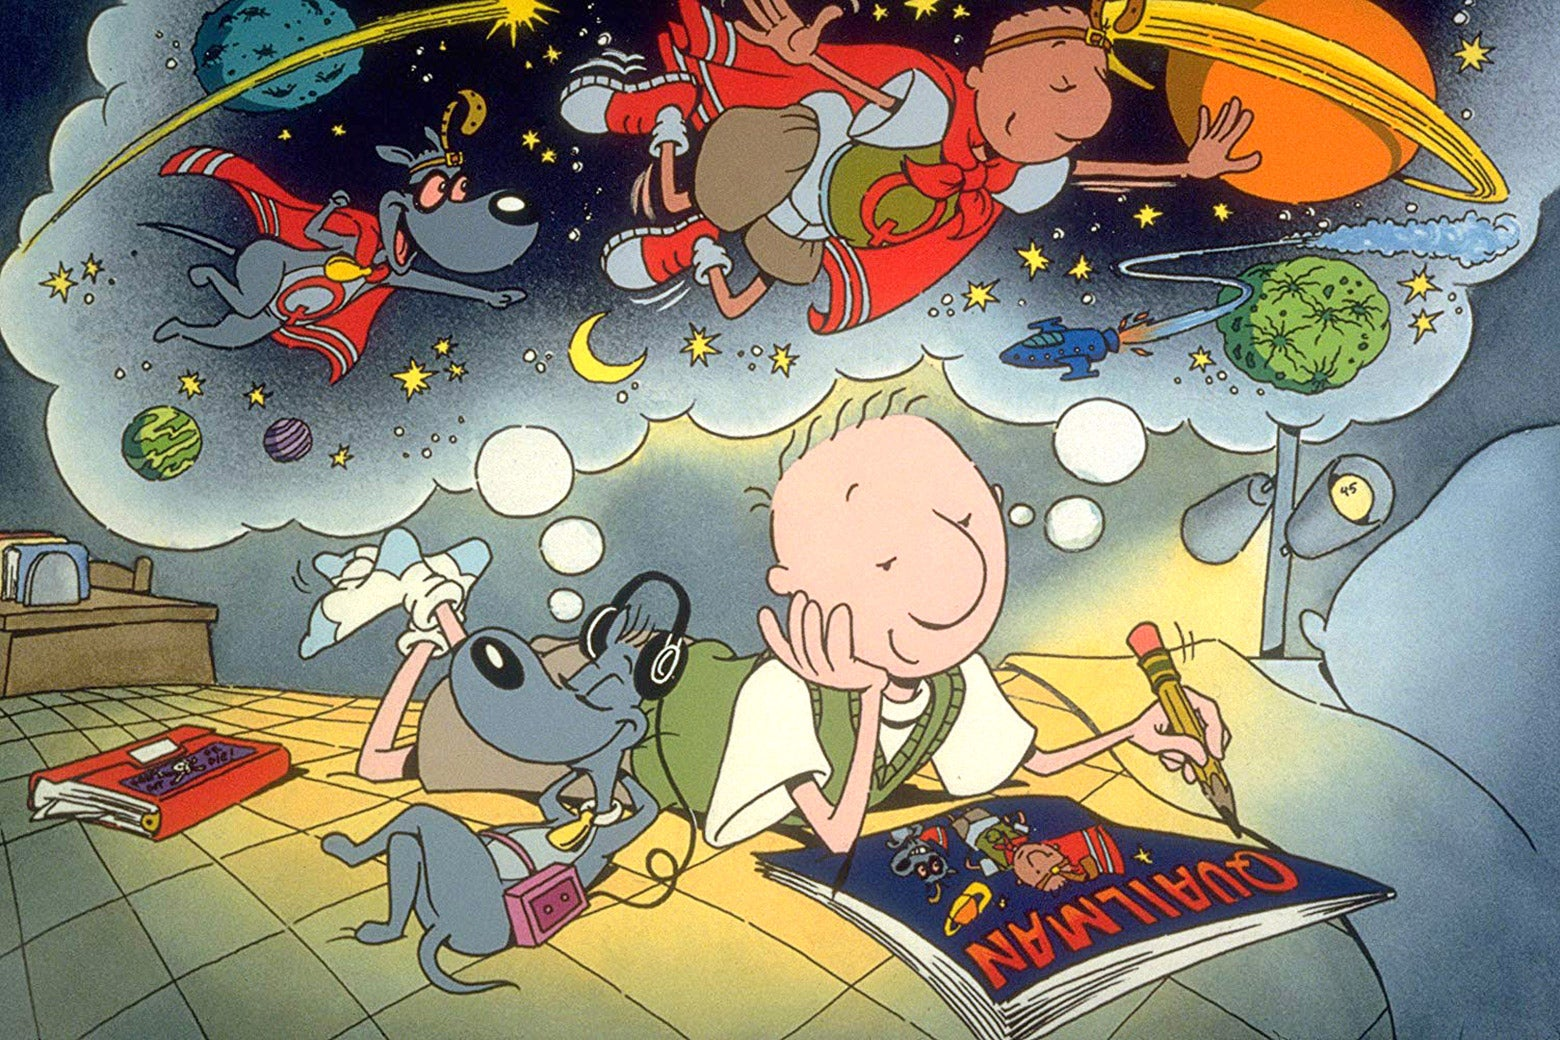 A still from Nickelodeon's Doug, featuring Doug and his dog.